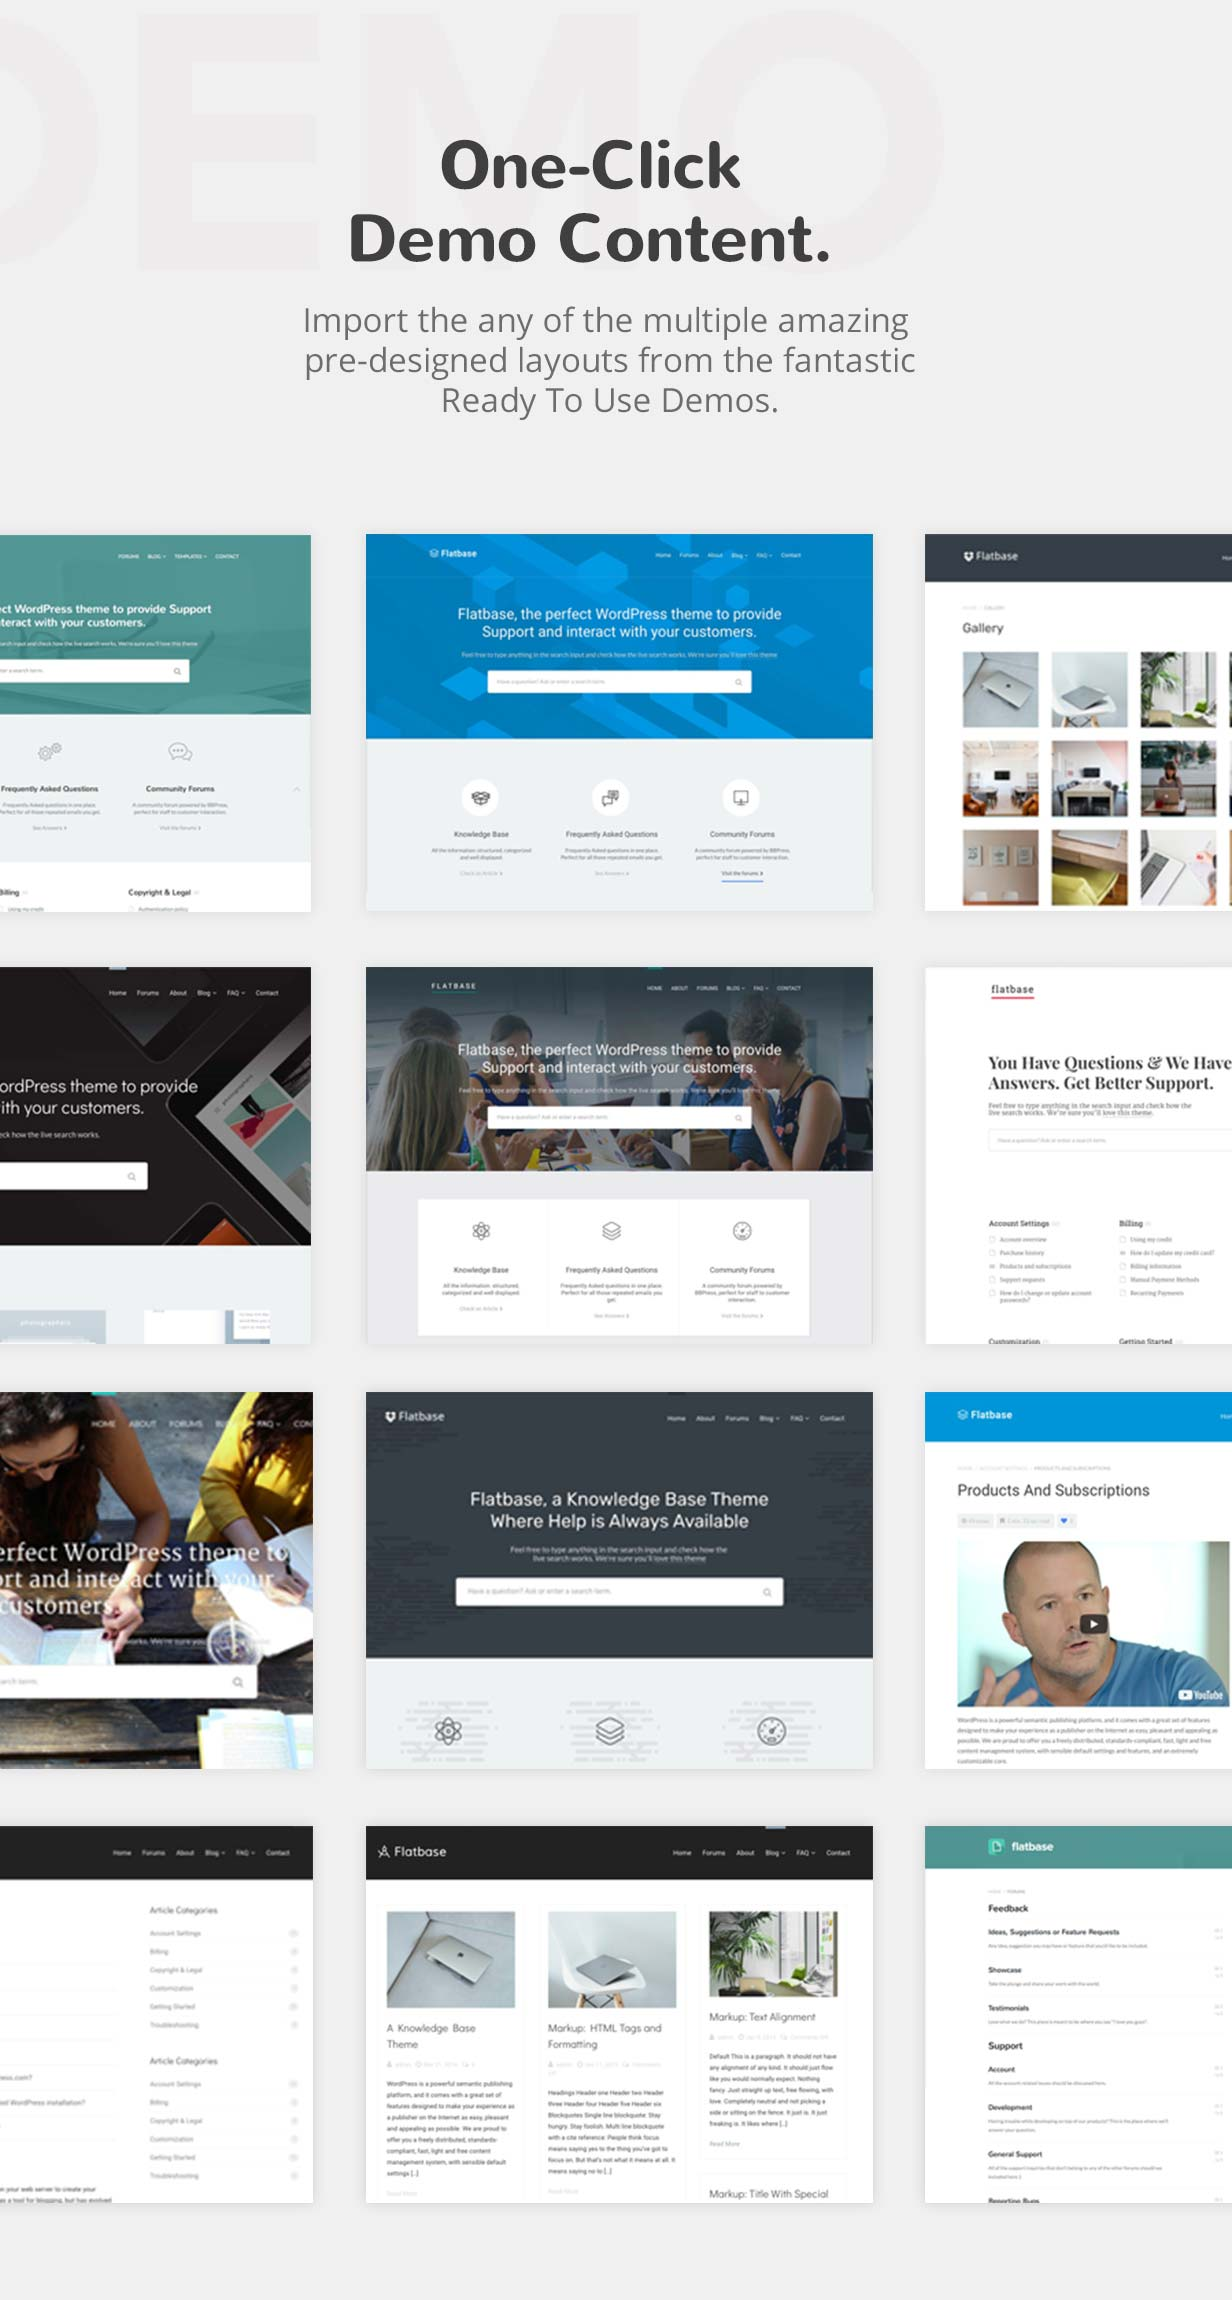 Flatbase - A responsive Knowledge Base/Wiki Theme - 2